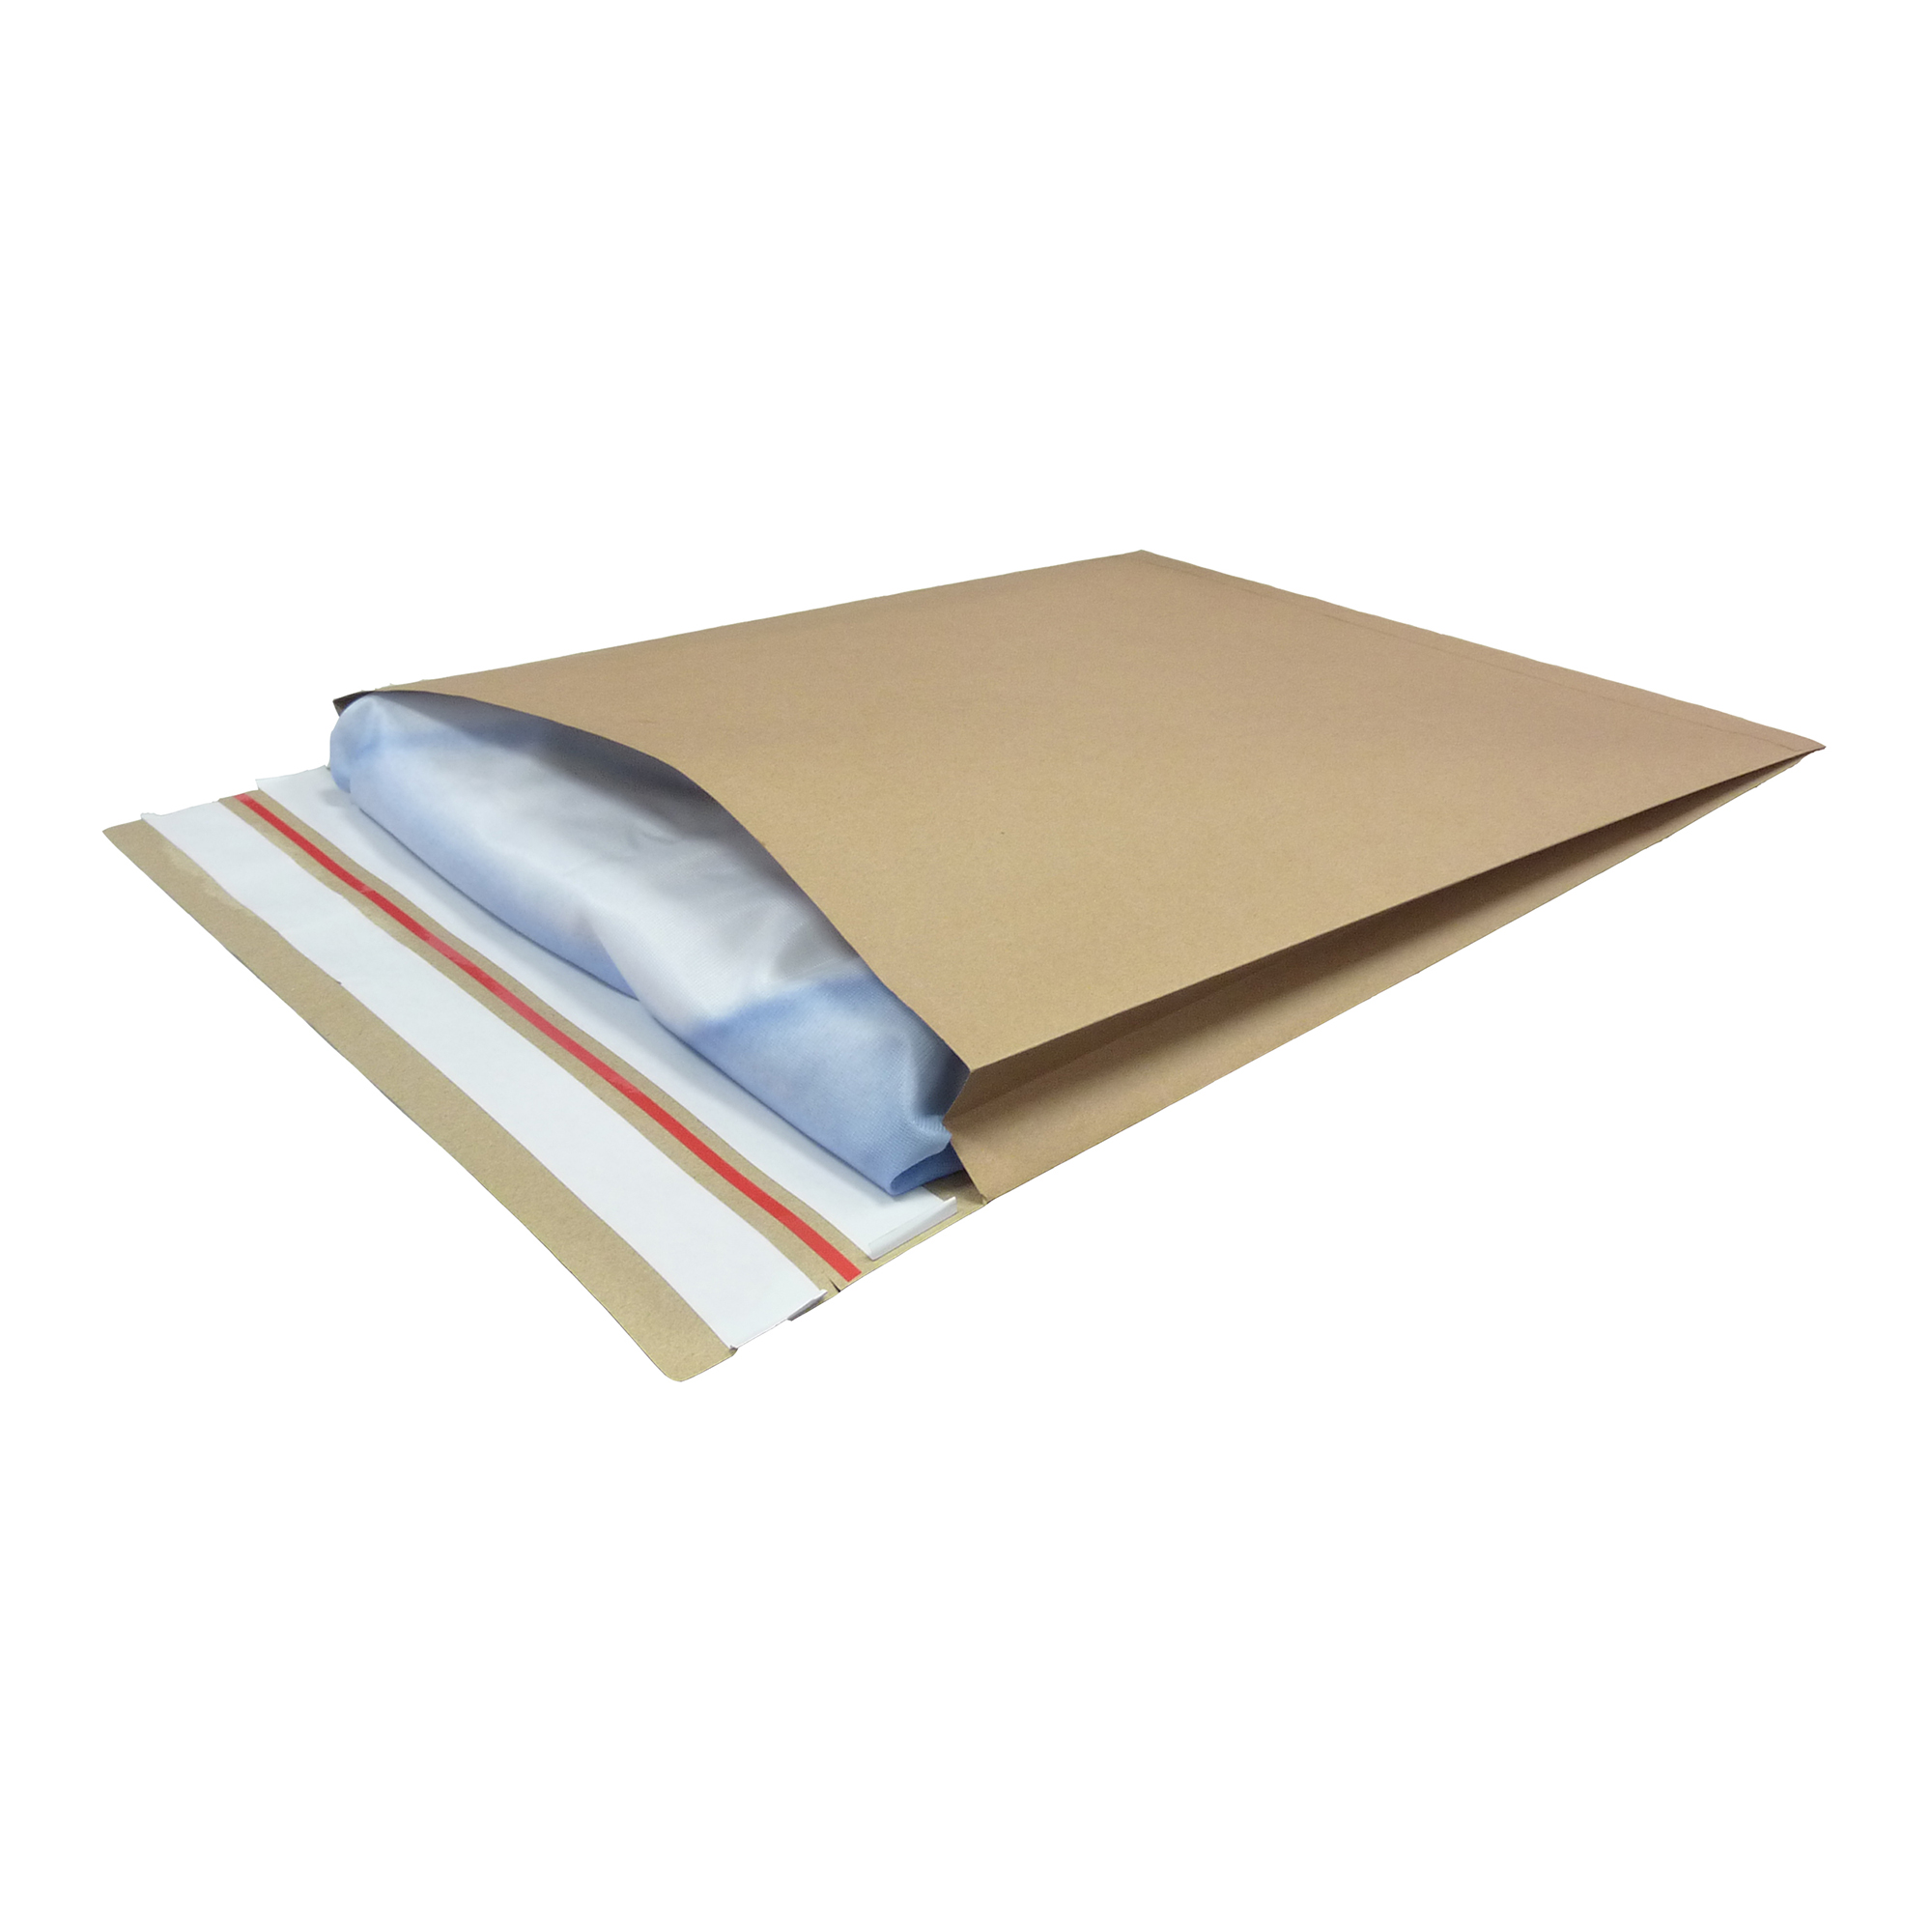 Standard envelopes Kraft Mailer Eco V Bottom & Side Gussets Double P&S 500x600x60mm +100 flap Manilla Ref RBL10534 Pack 50